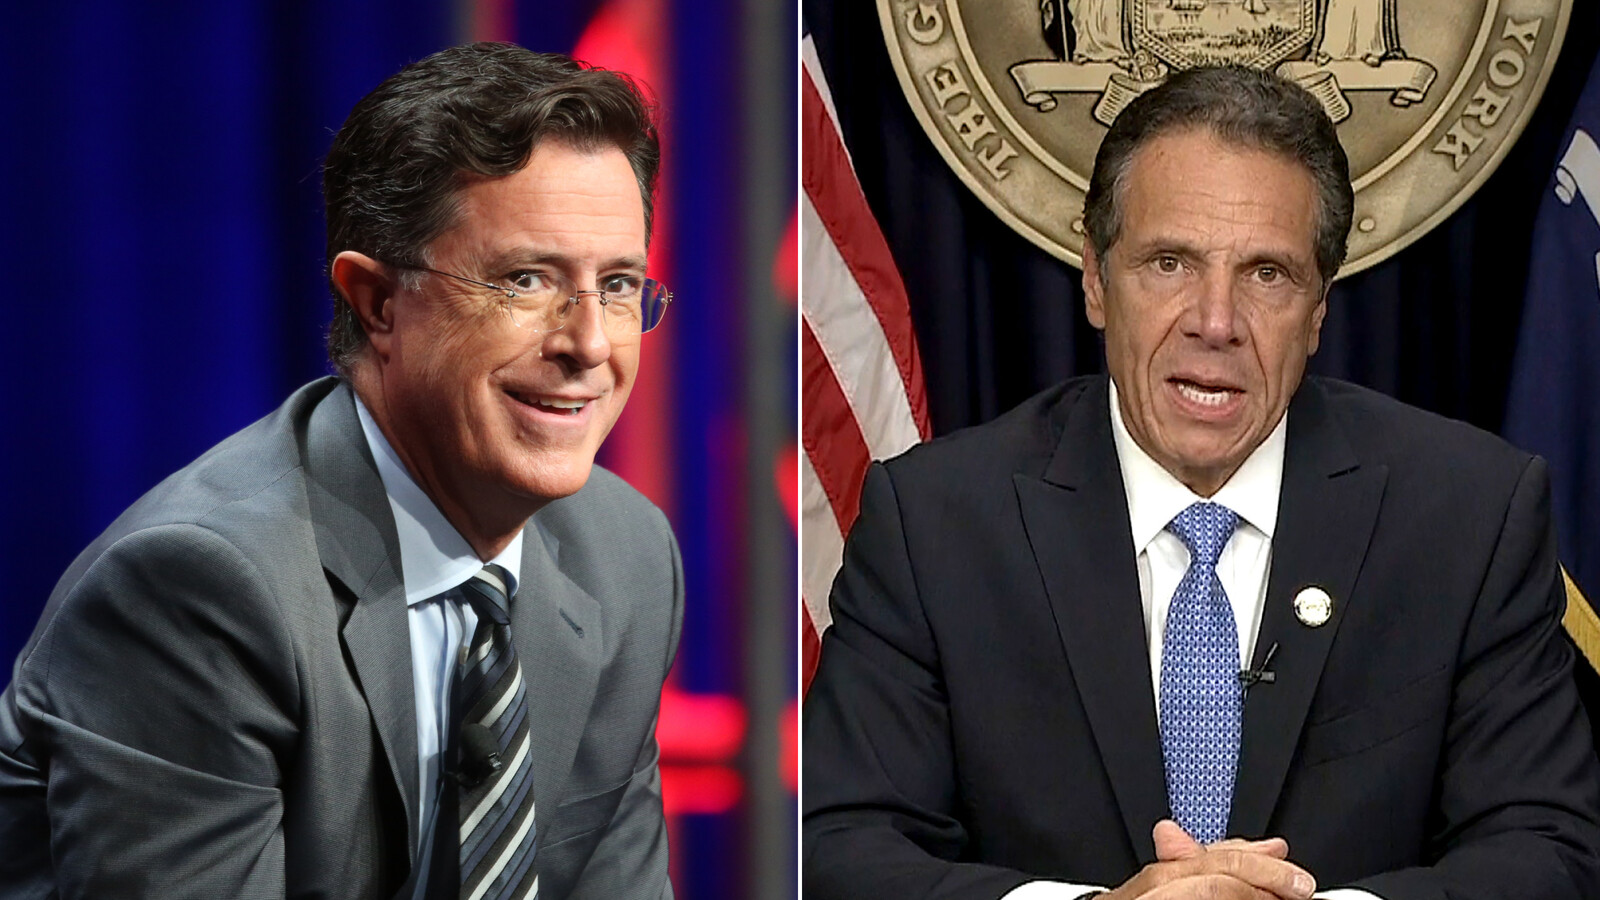 Stephen Colbert's message for Andrew Cuomo: Don't let the door hit you in the butt